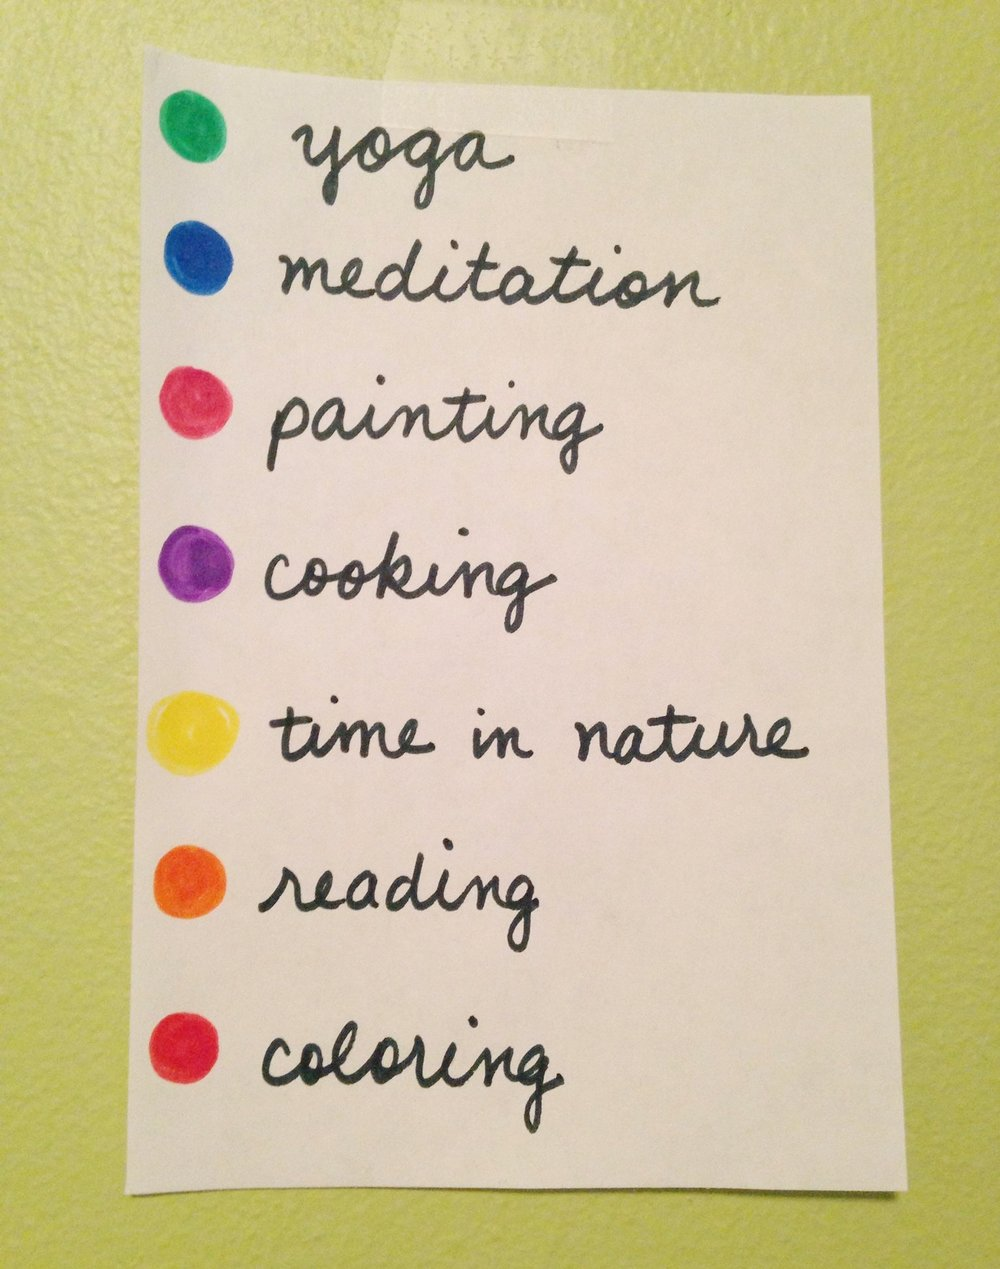 Color-coded self-care activity chart